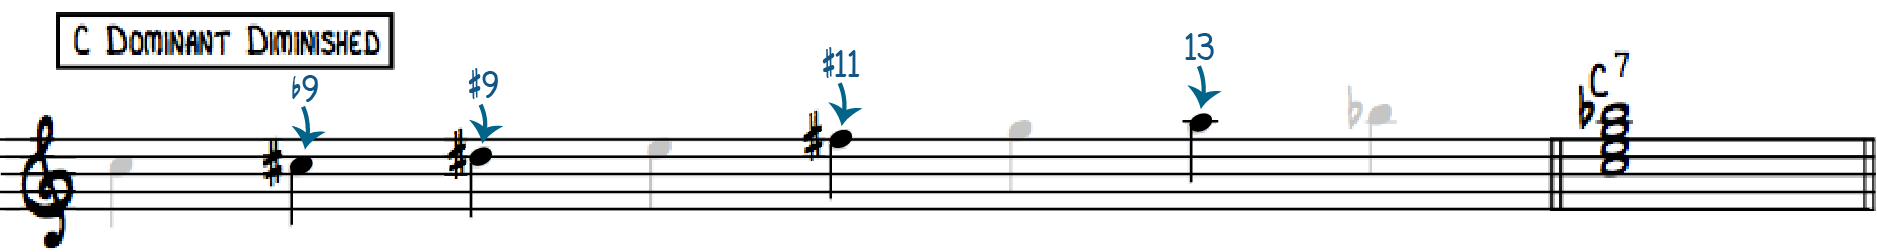 Dominant Diminished Scale Dominant Extensions & Alterations